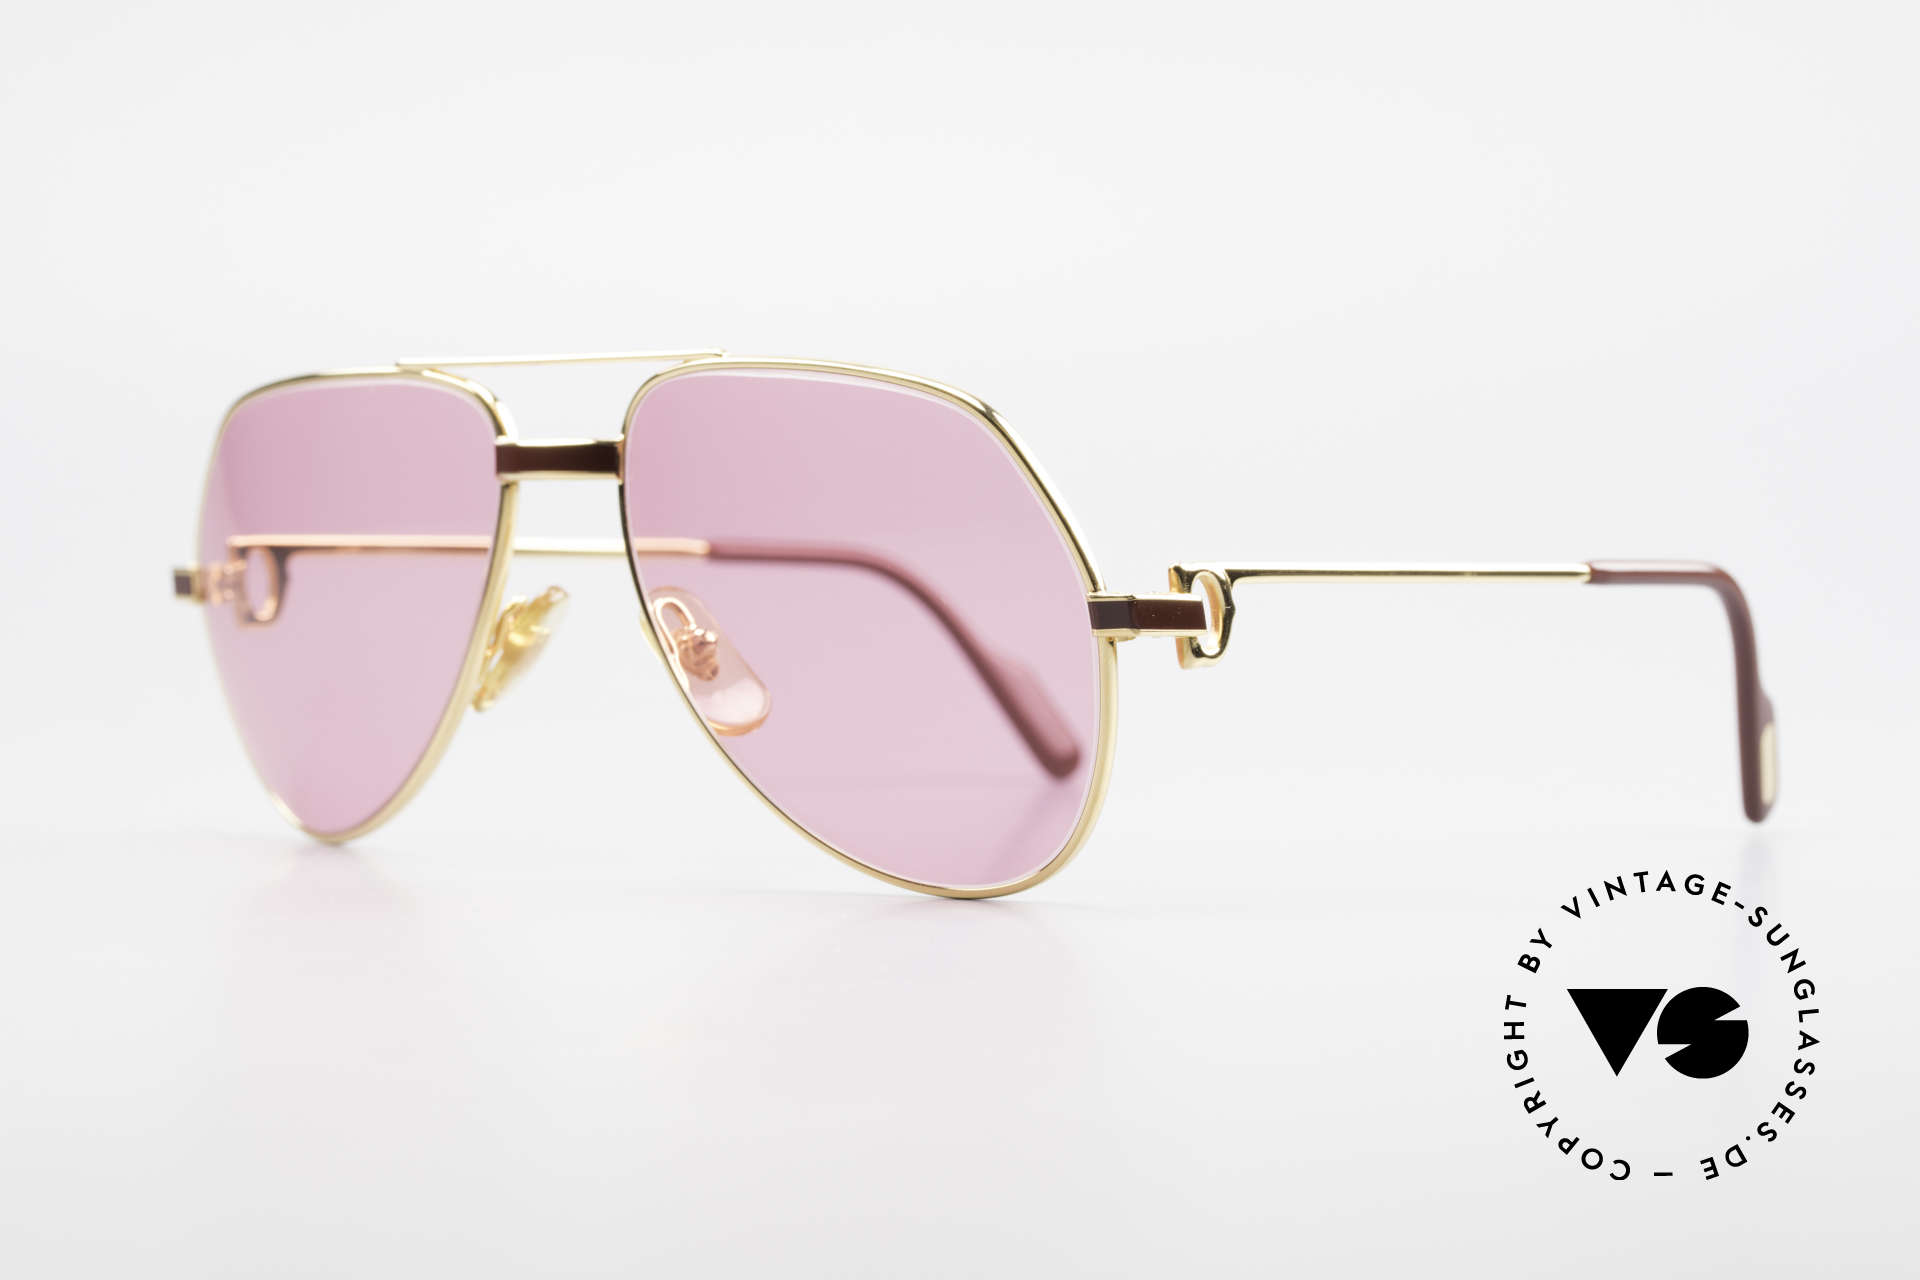 Cartier Vendome Laque - S 80's Luxury Sunglasses Pink, this pair (with LAQUE decor) in SMALL size 56-16, 135, Made for Men and Women